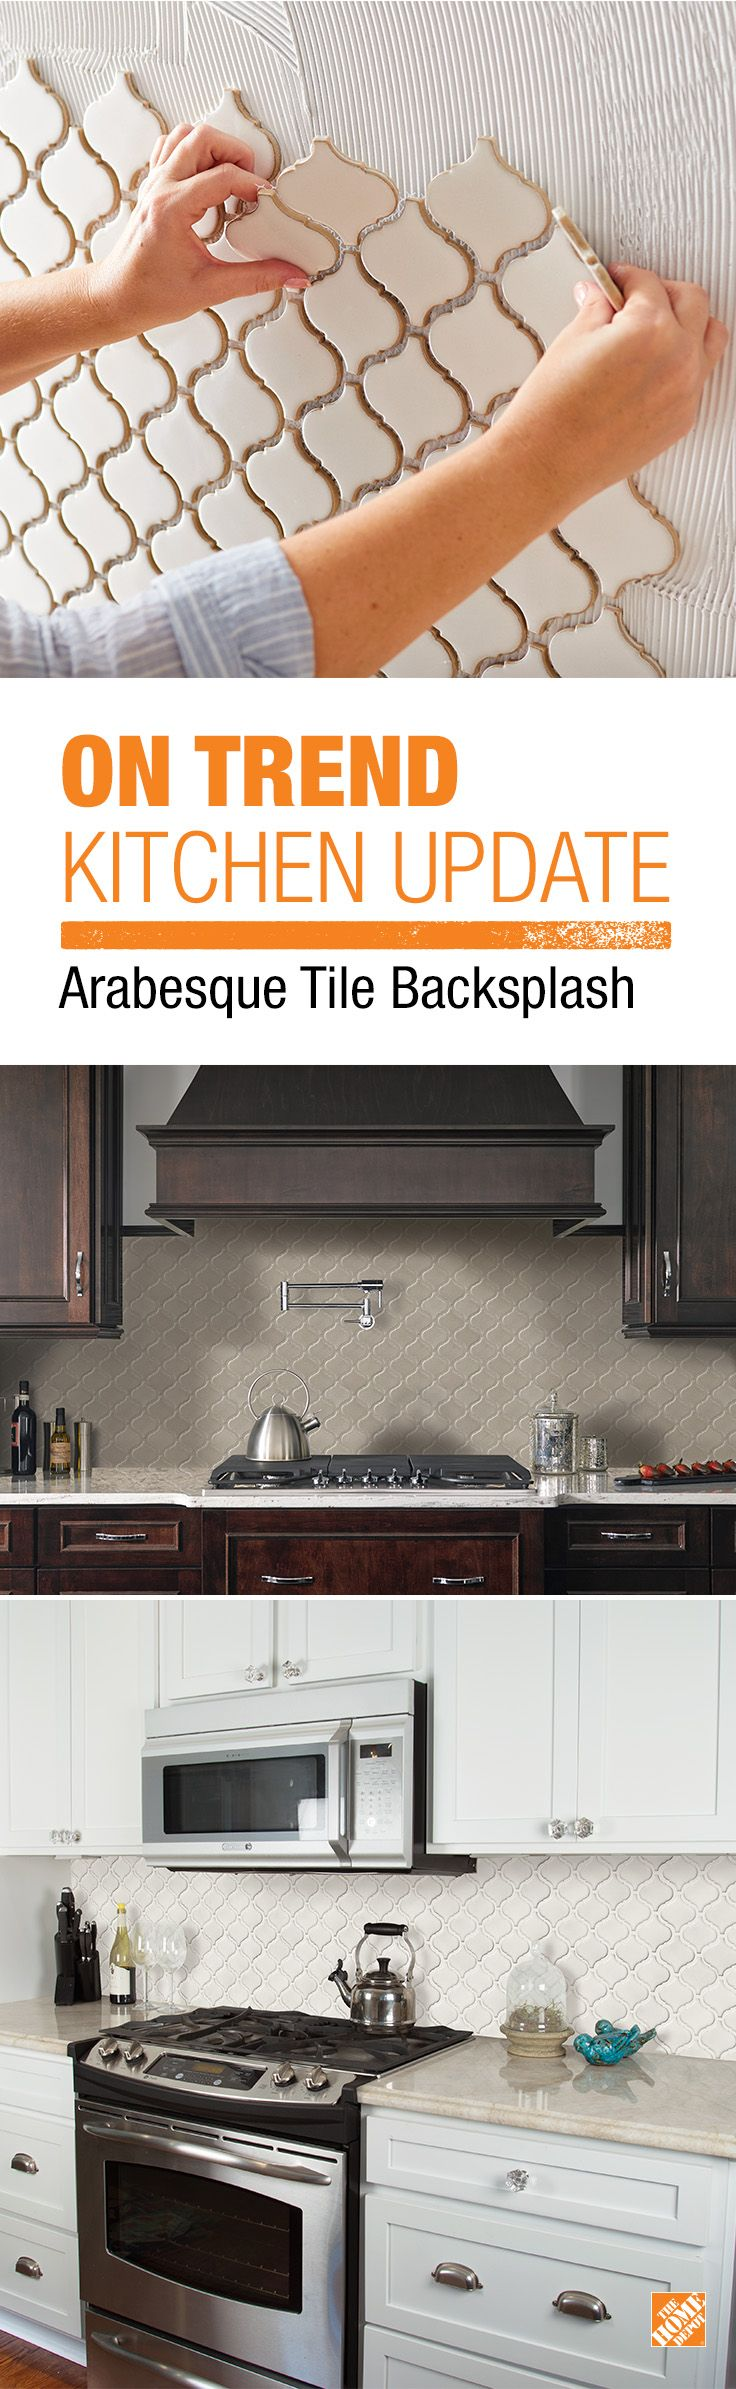 Stay Under Budget On Your DIY Kitchen Project With MS International Bianco  Arabesque Ceramic Mosiac Wall. Backsplash TileBacksplash IdeasTile ...